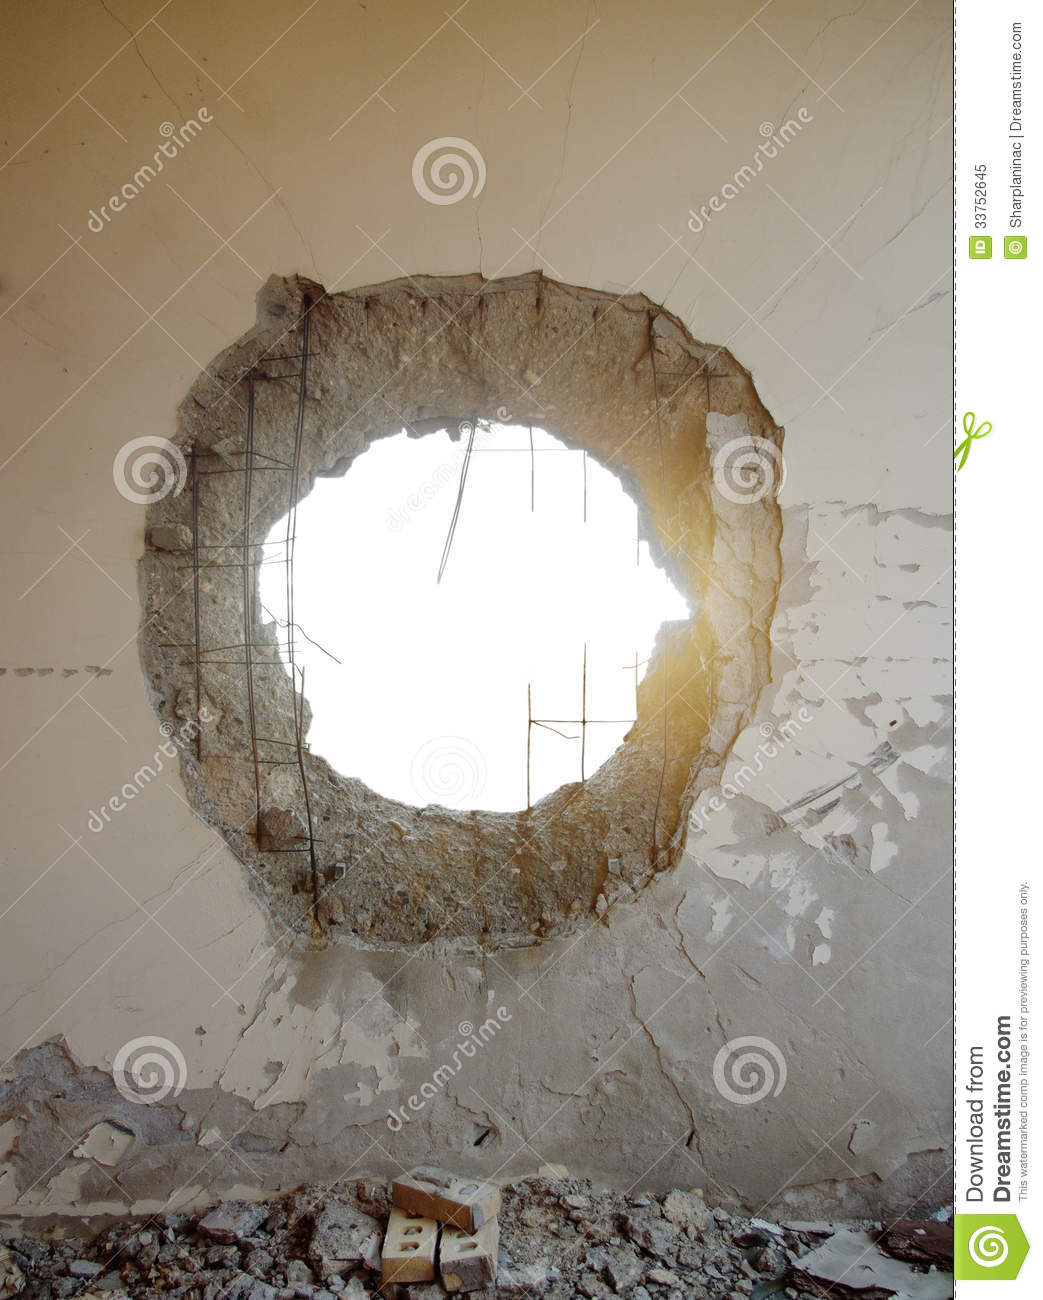 Hole In Concrete Wall : Tank shell impact hole in the wall royalty free stock